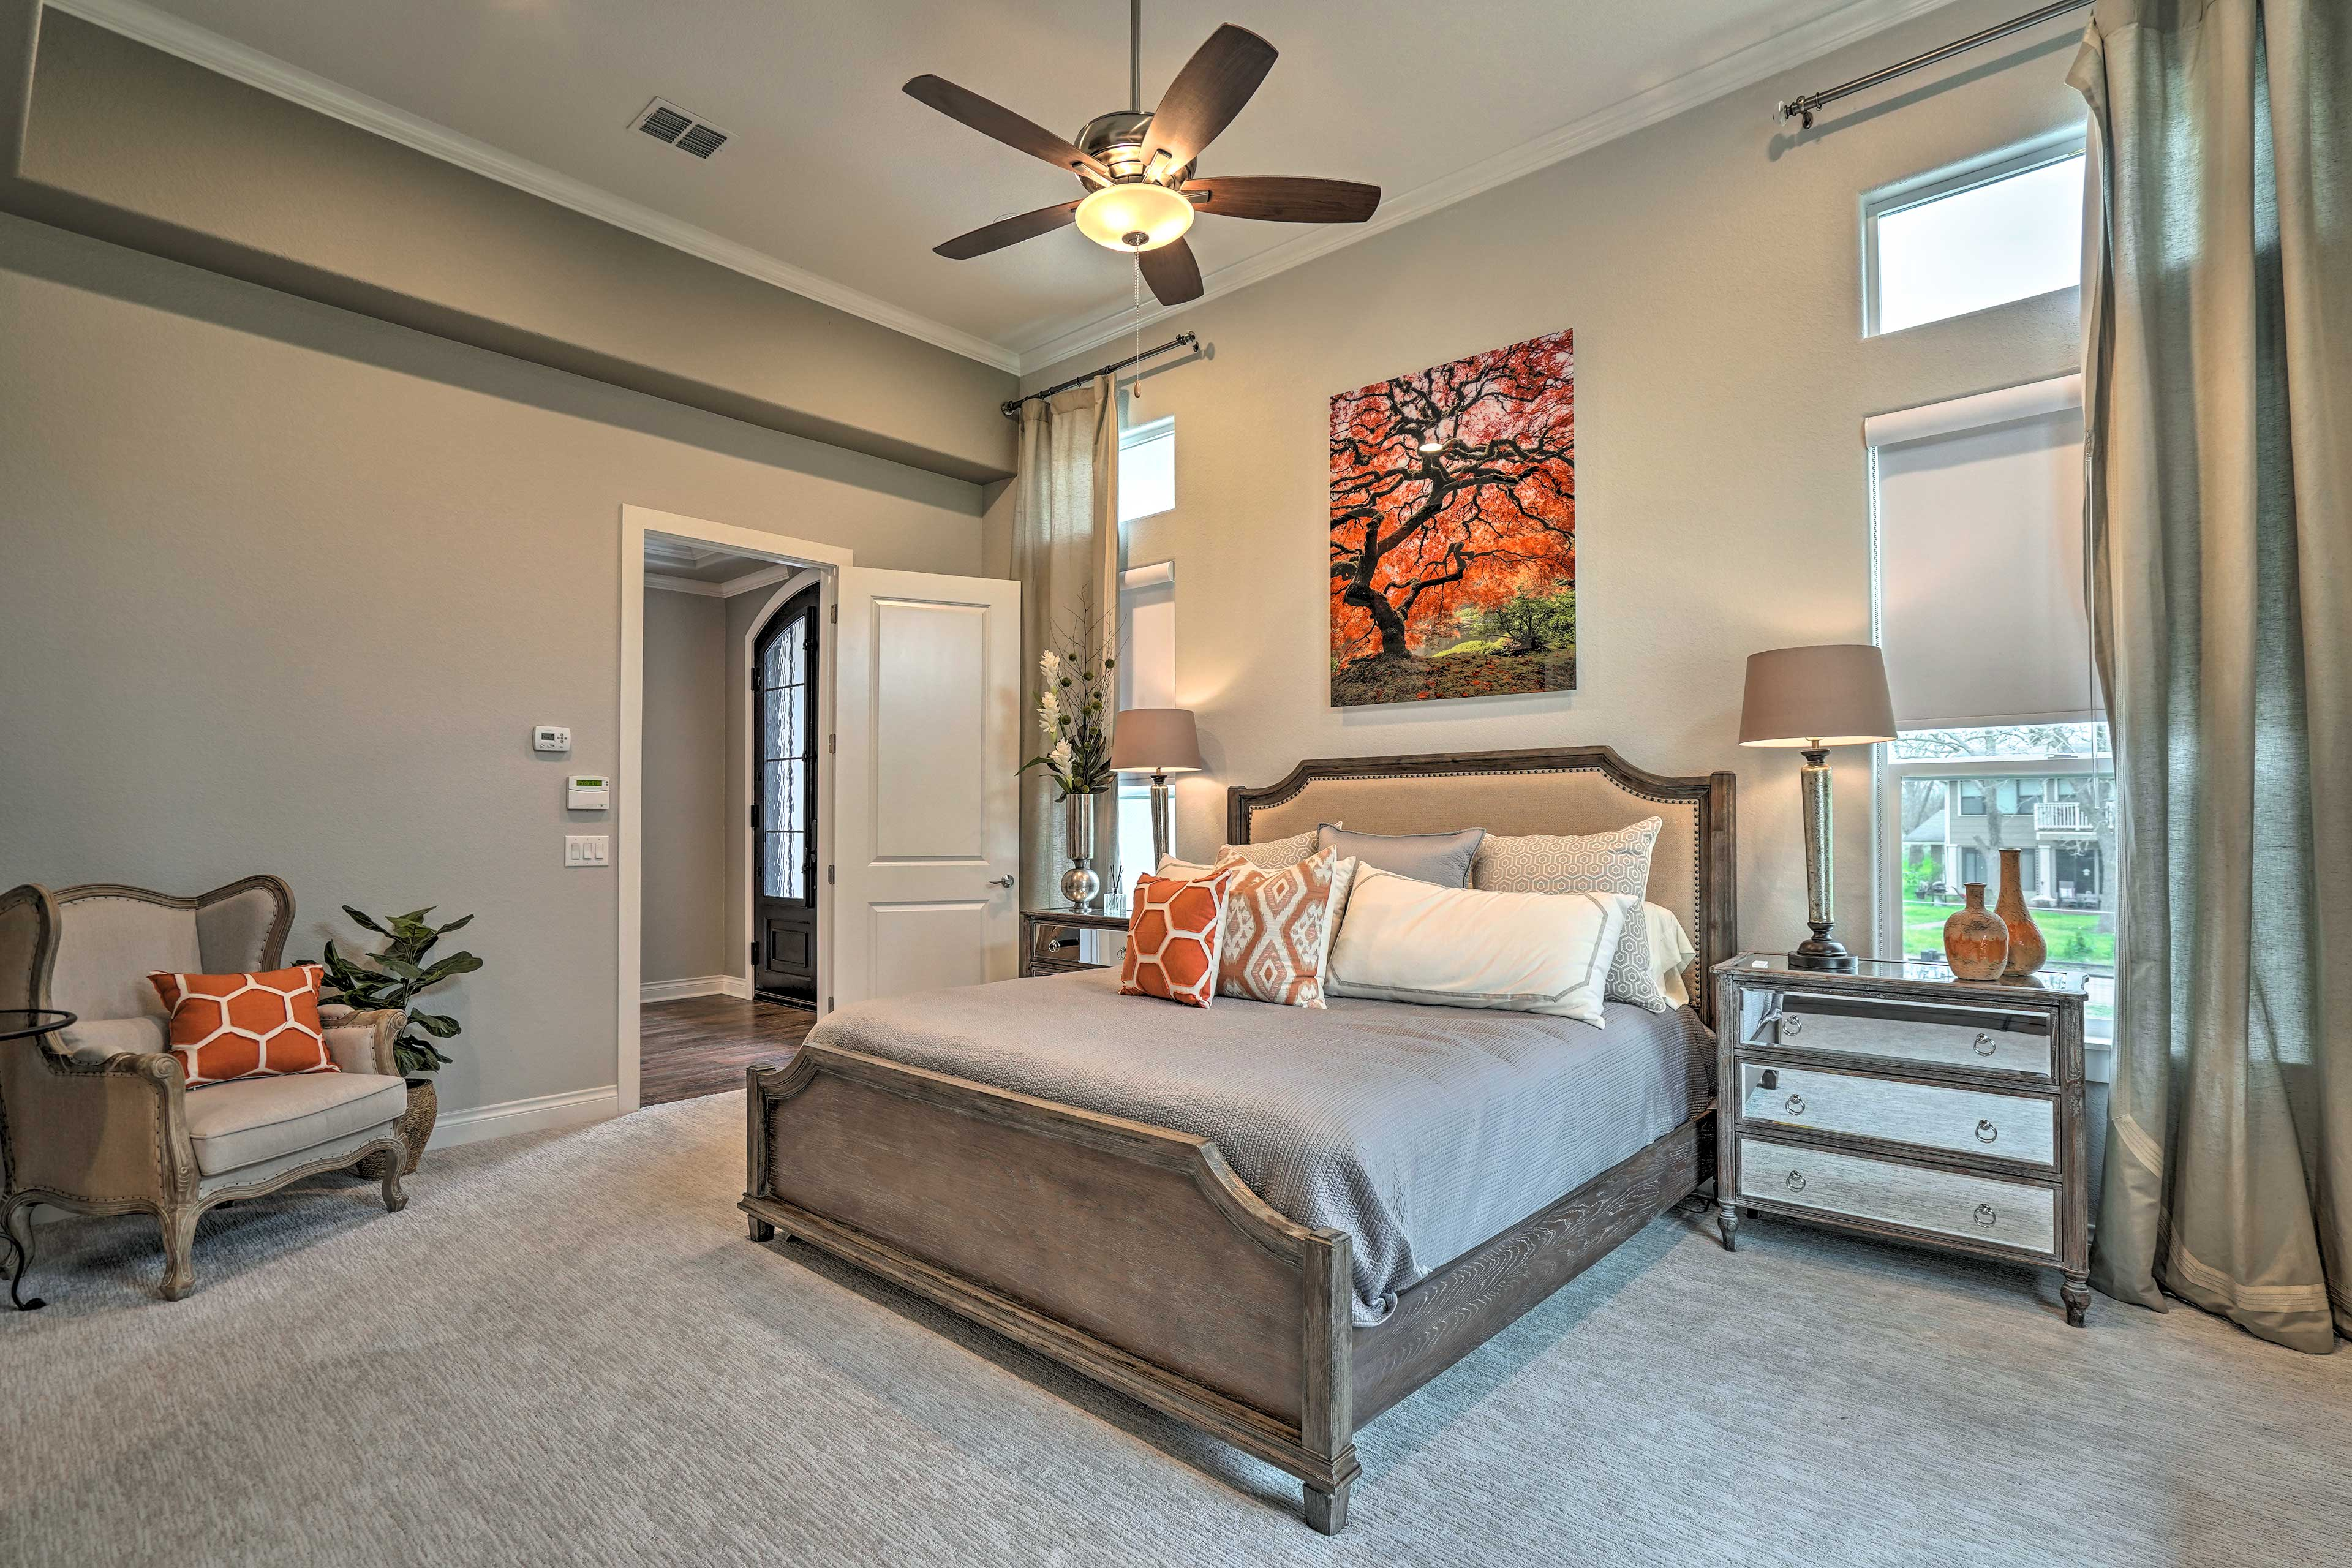 Choose from 5 bedrooms to sleep in.